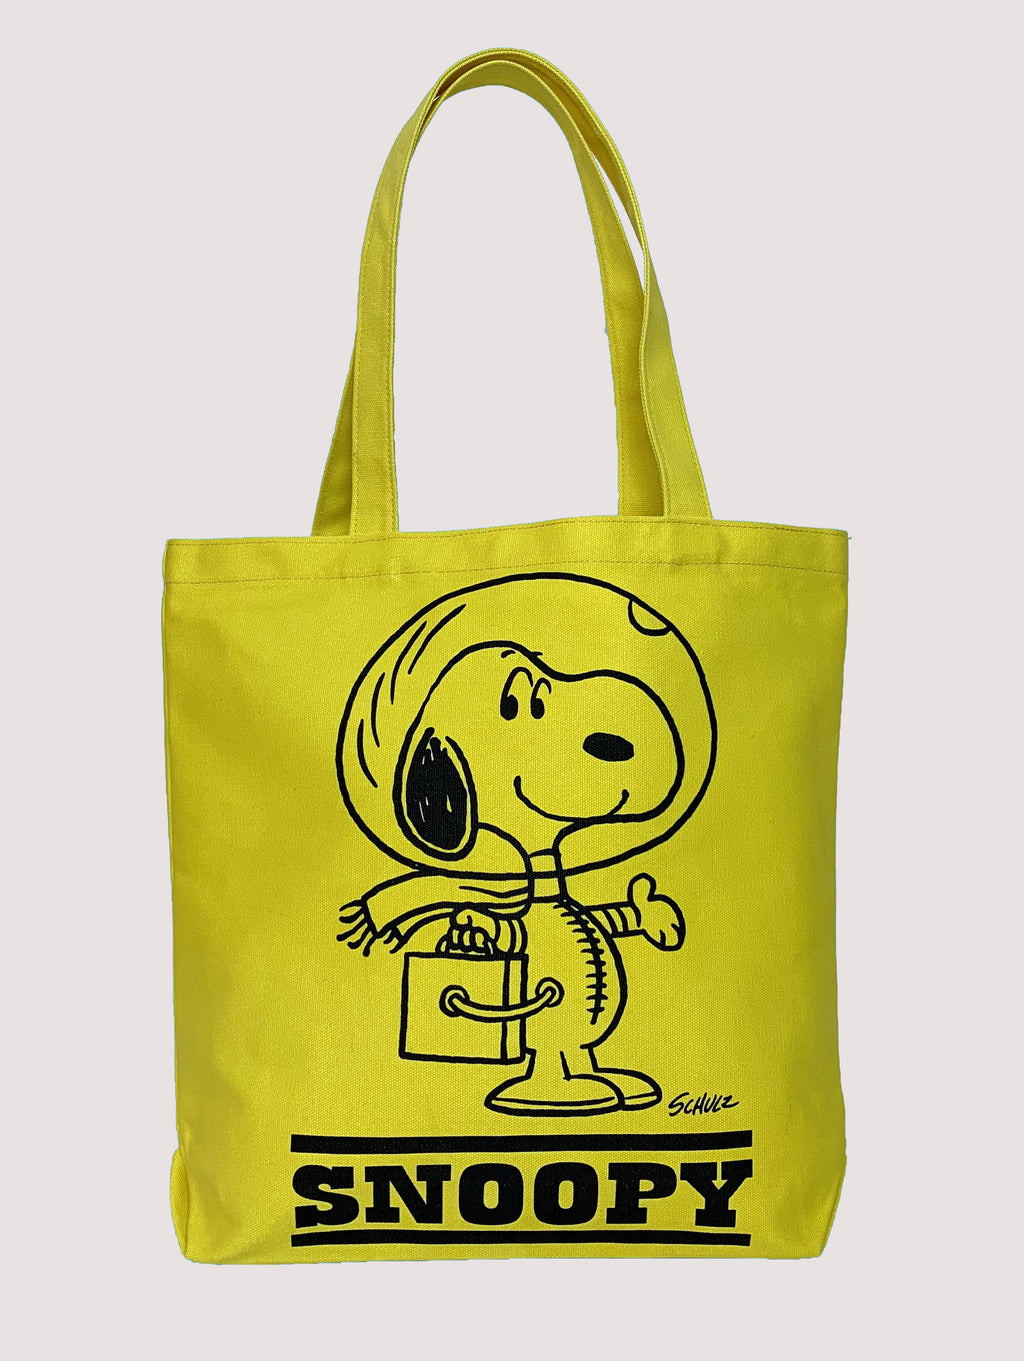 SNOOPY TOTE - ALL SYSTEMS ARE GO!